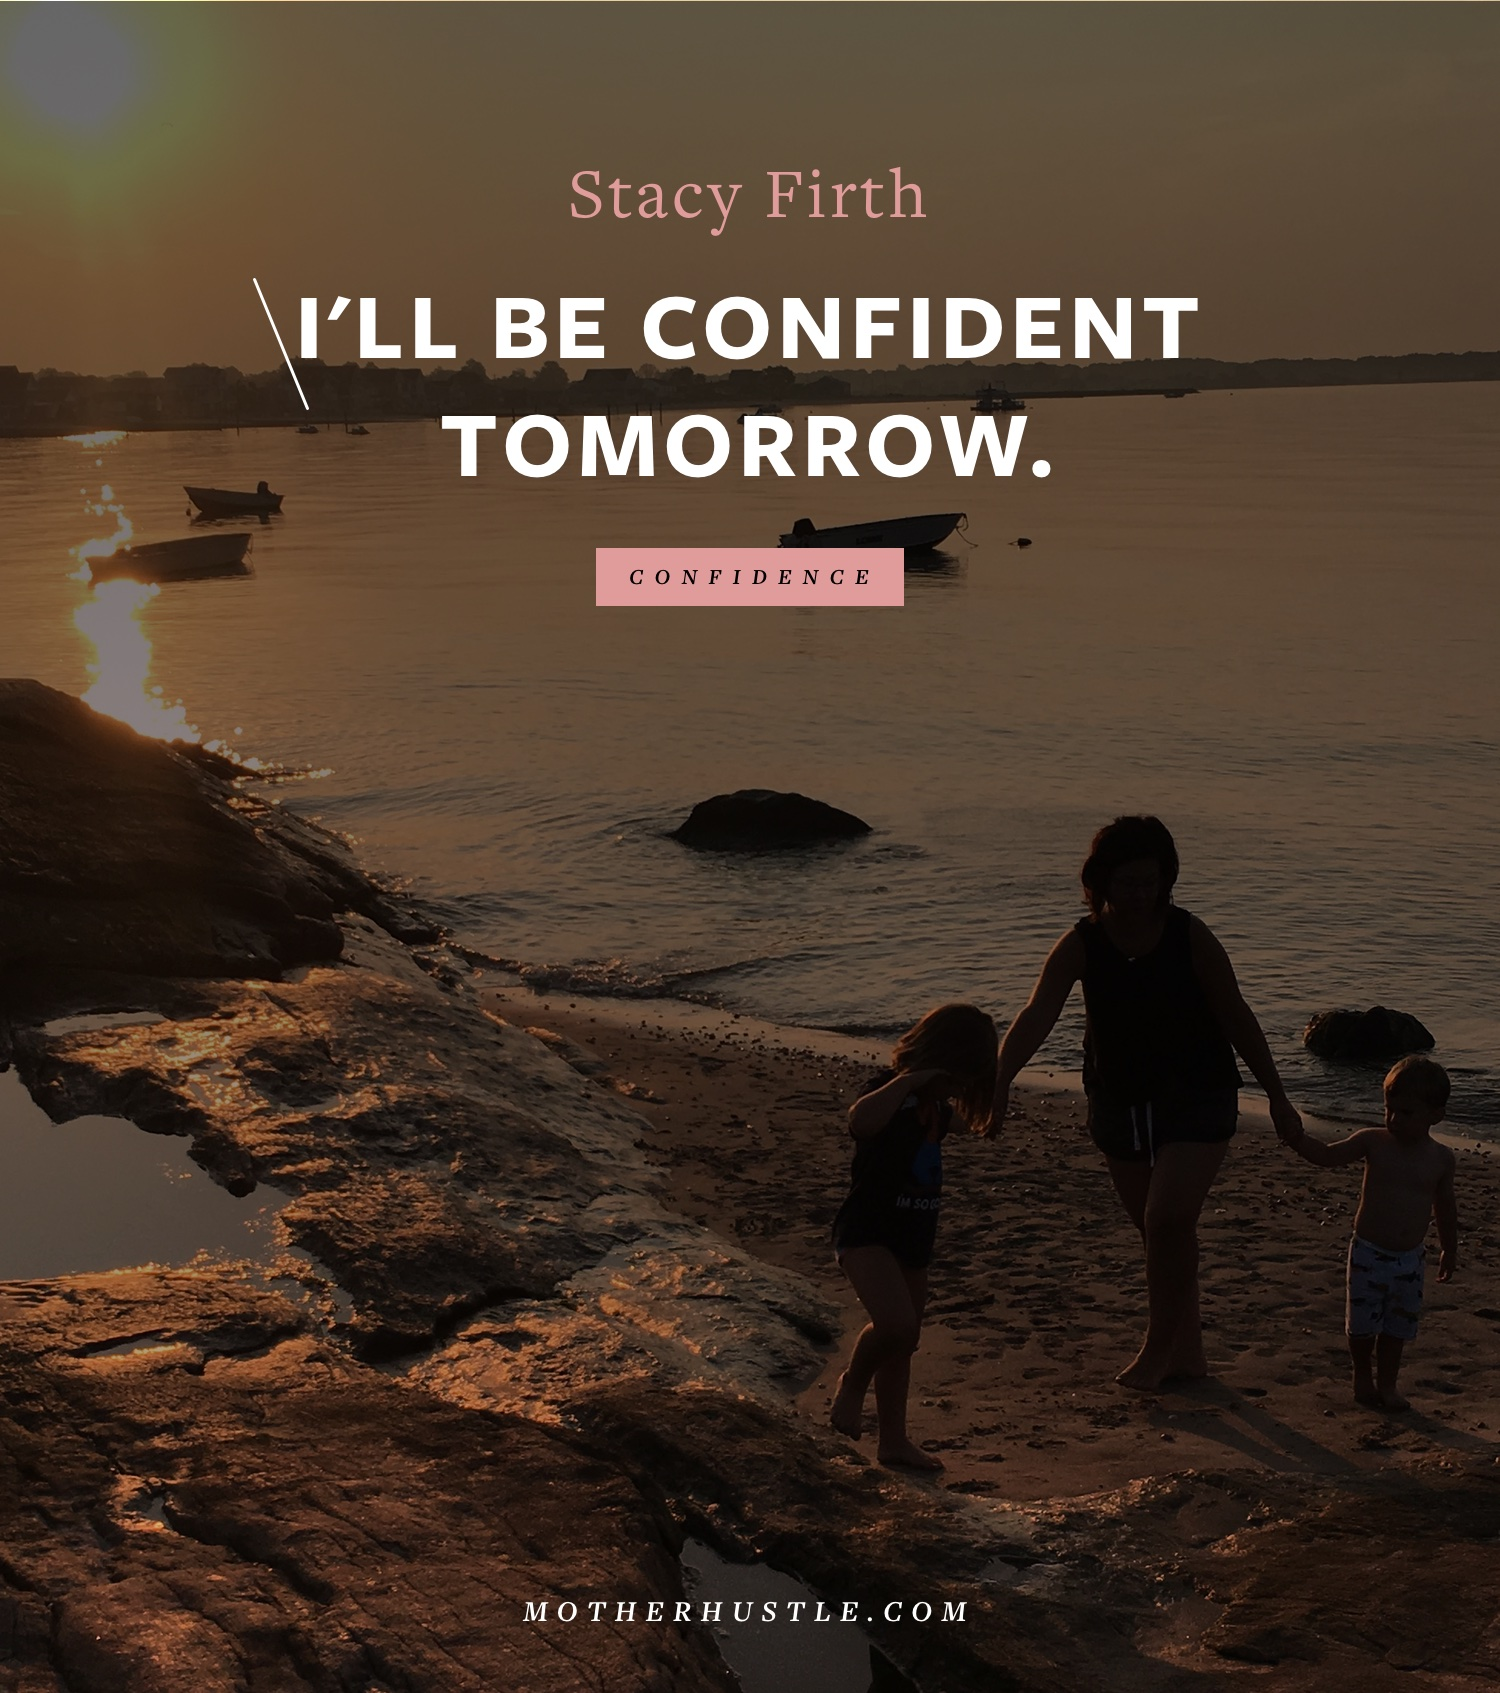 I'll Be Confident Tomorrow - BY Stacy Firth for MotherHustle